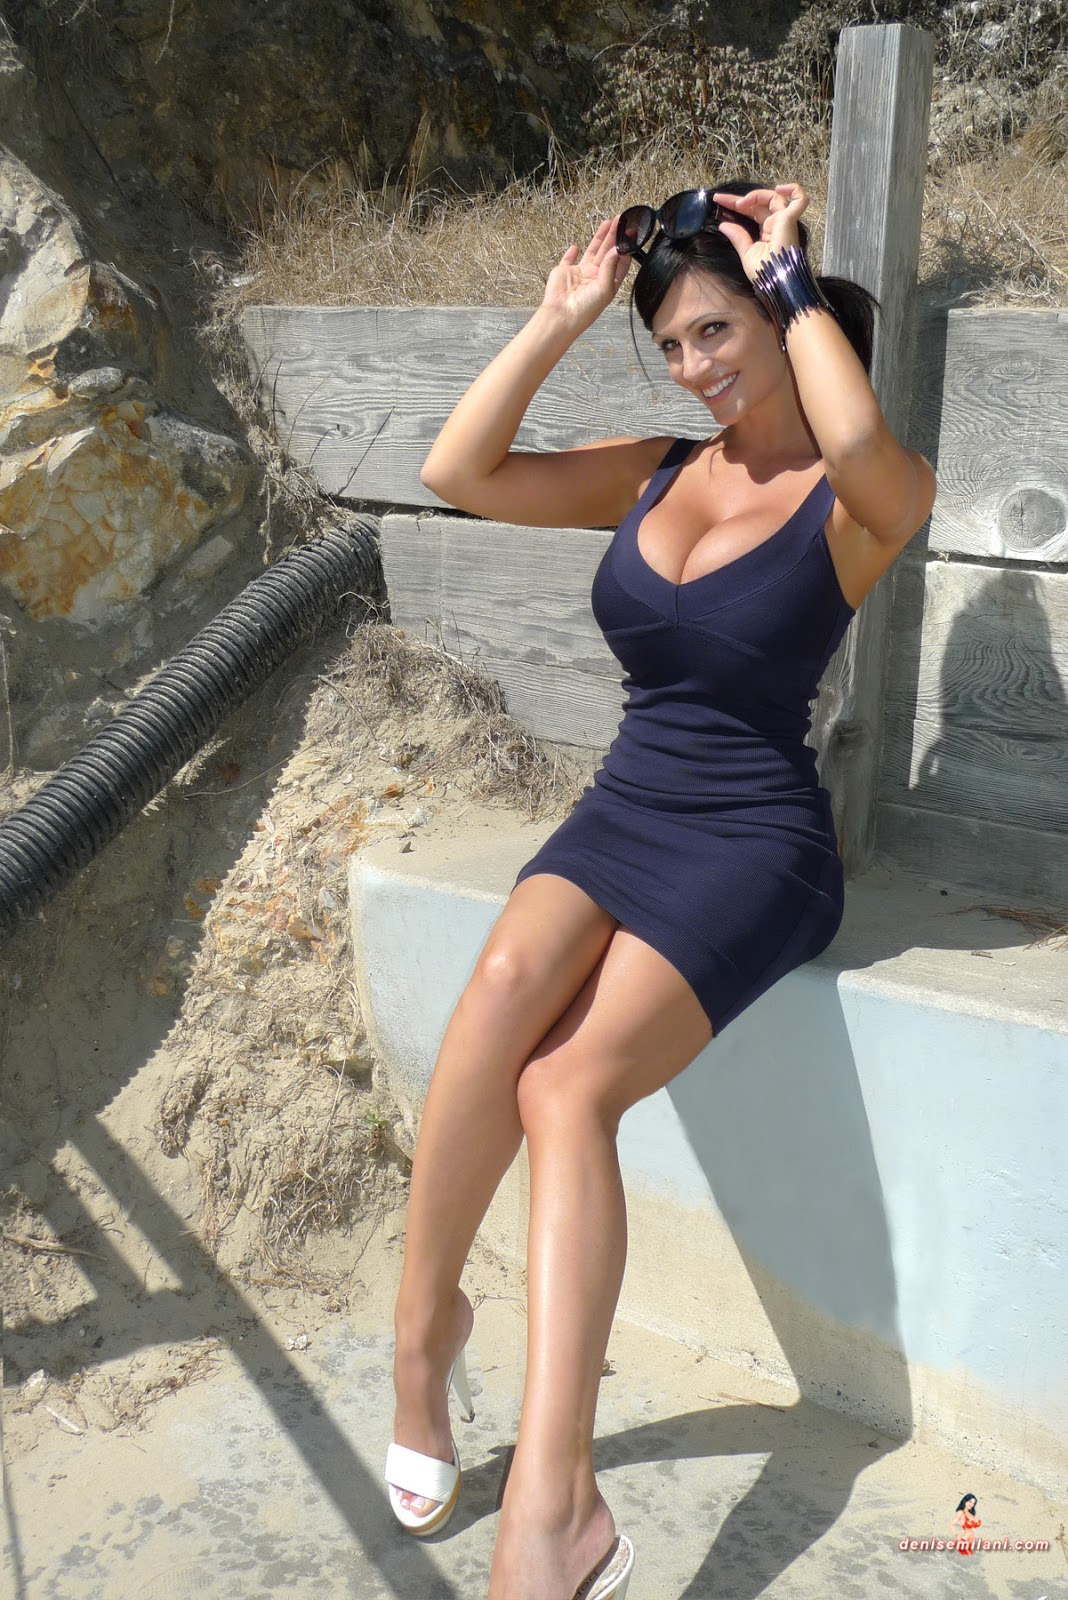 denise milani in a dress - photo #20